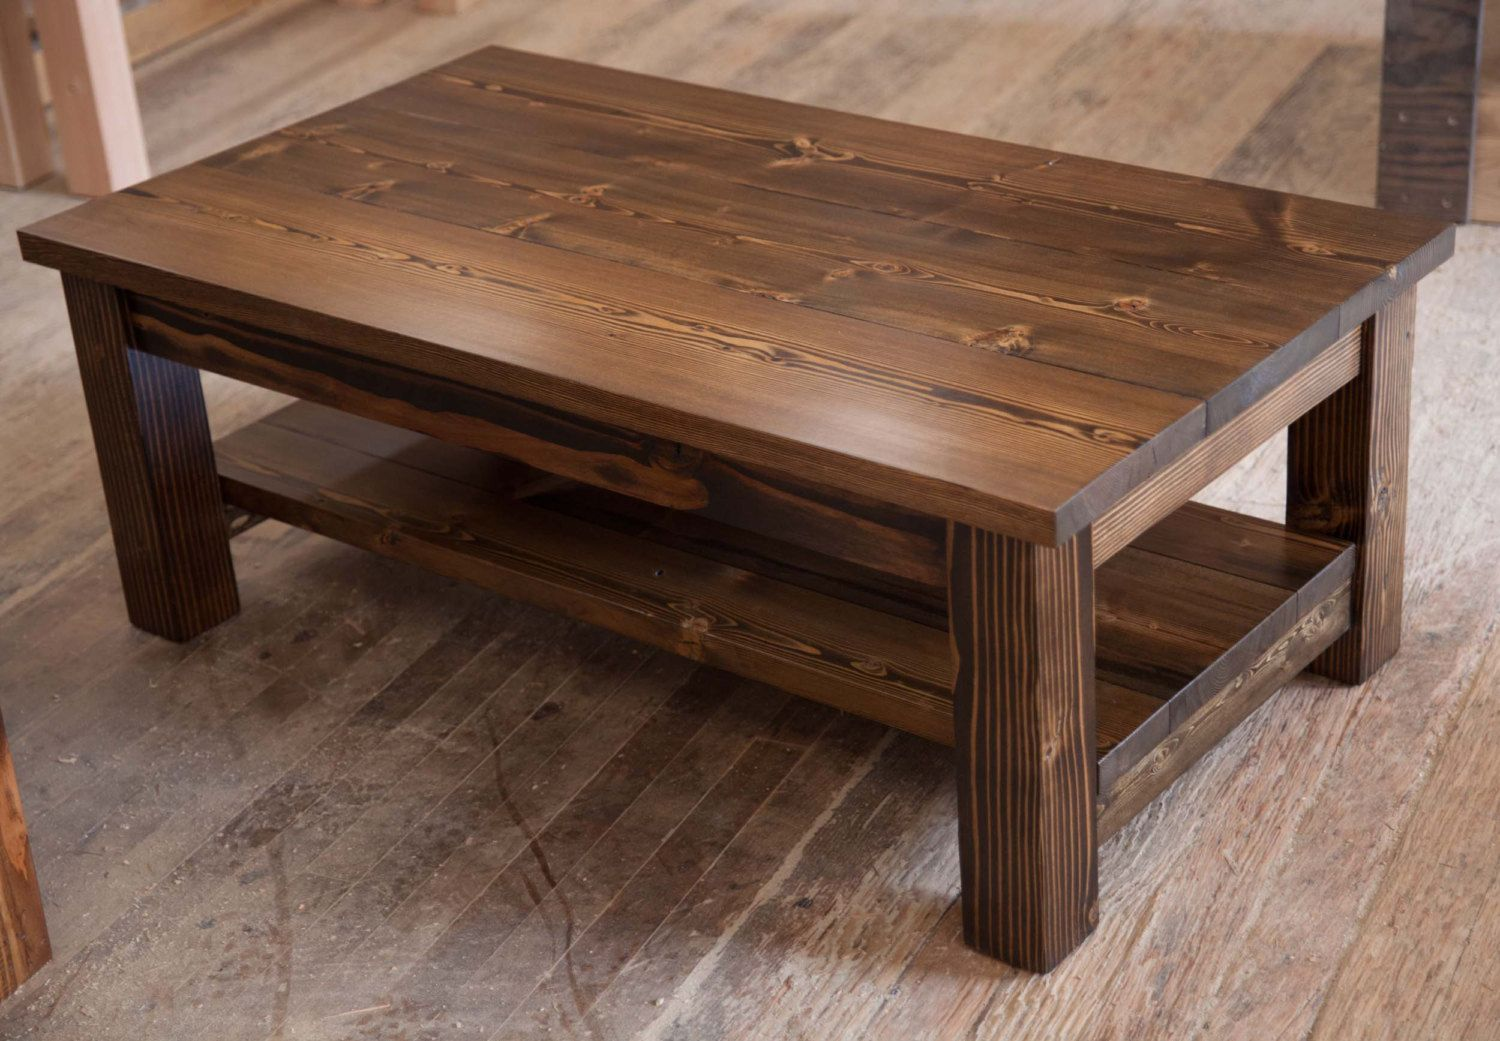 Couchtisch Rustikal Couchtisch Rustikal Woodworking In 2019 Rustic Coffee Tables